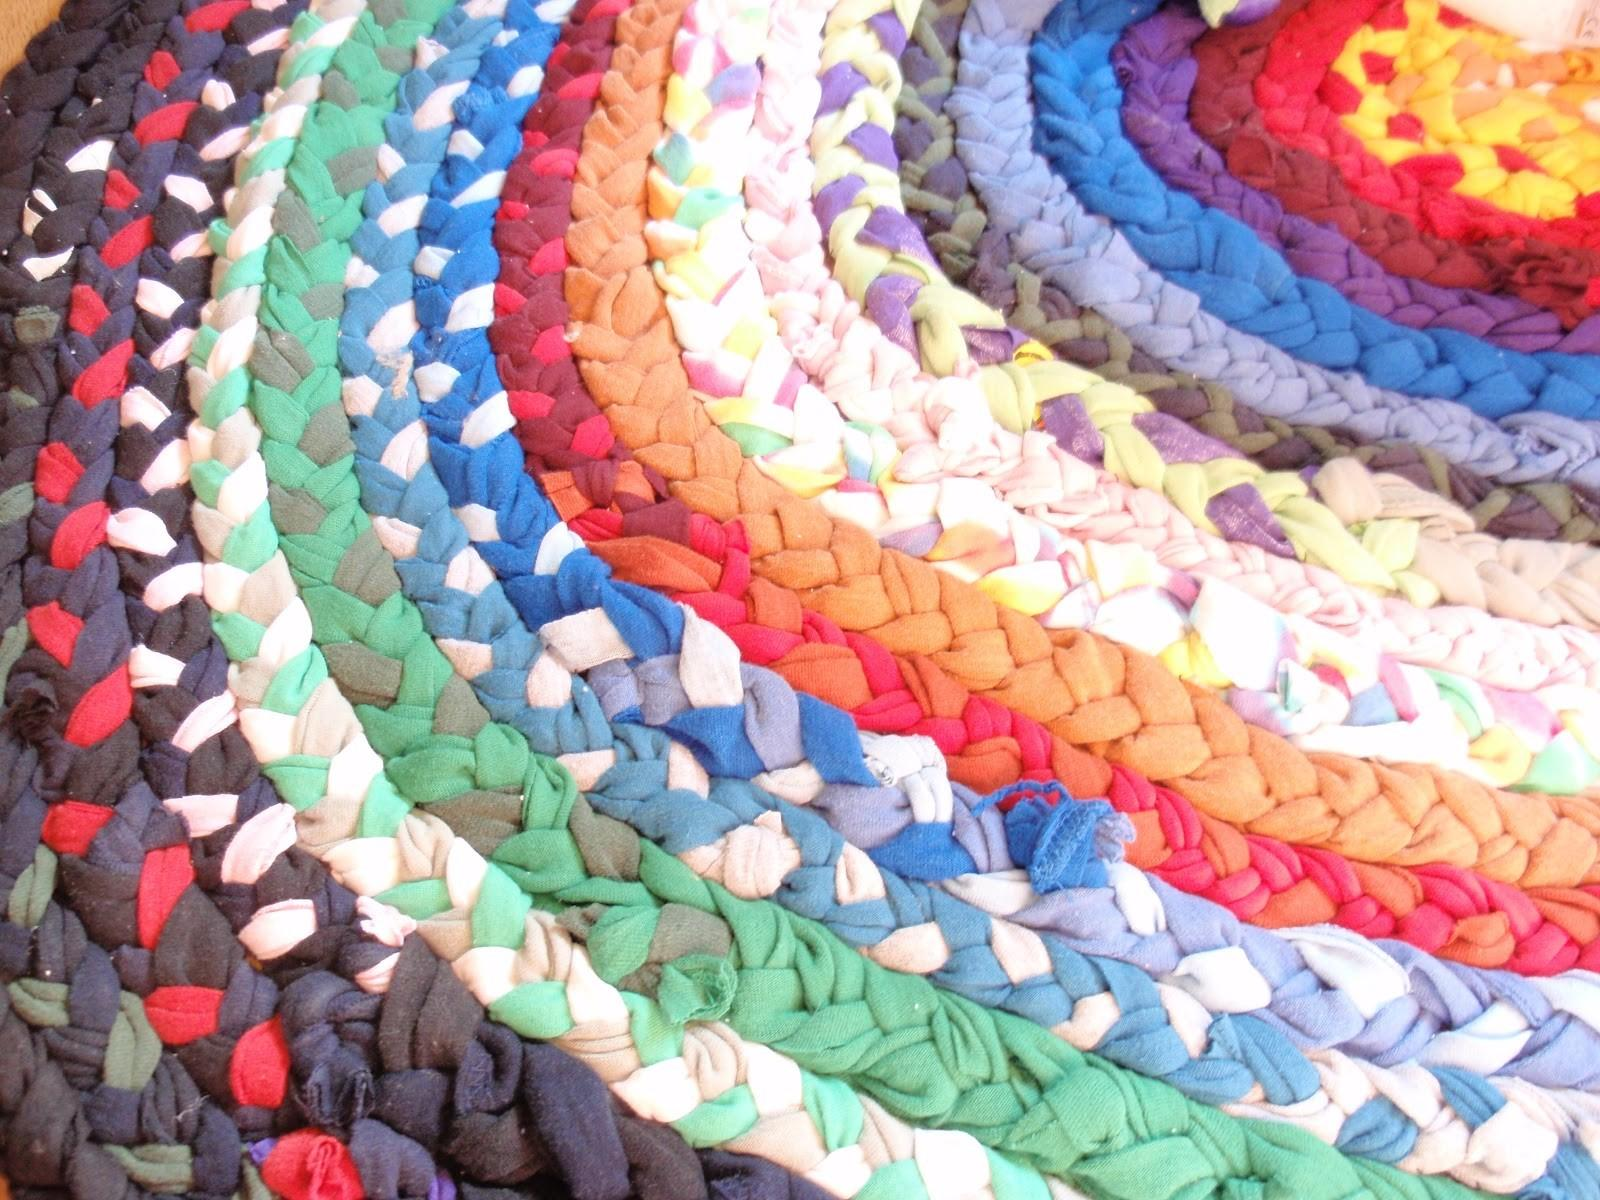 Friday Project Braided Shirt Rag Rug Small Things